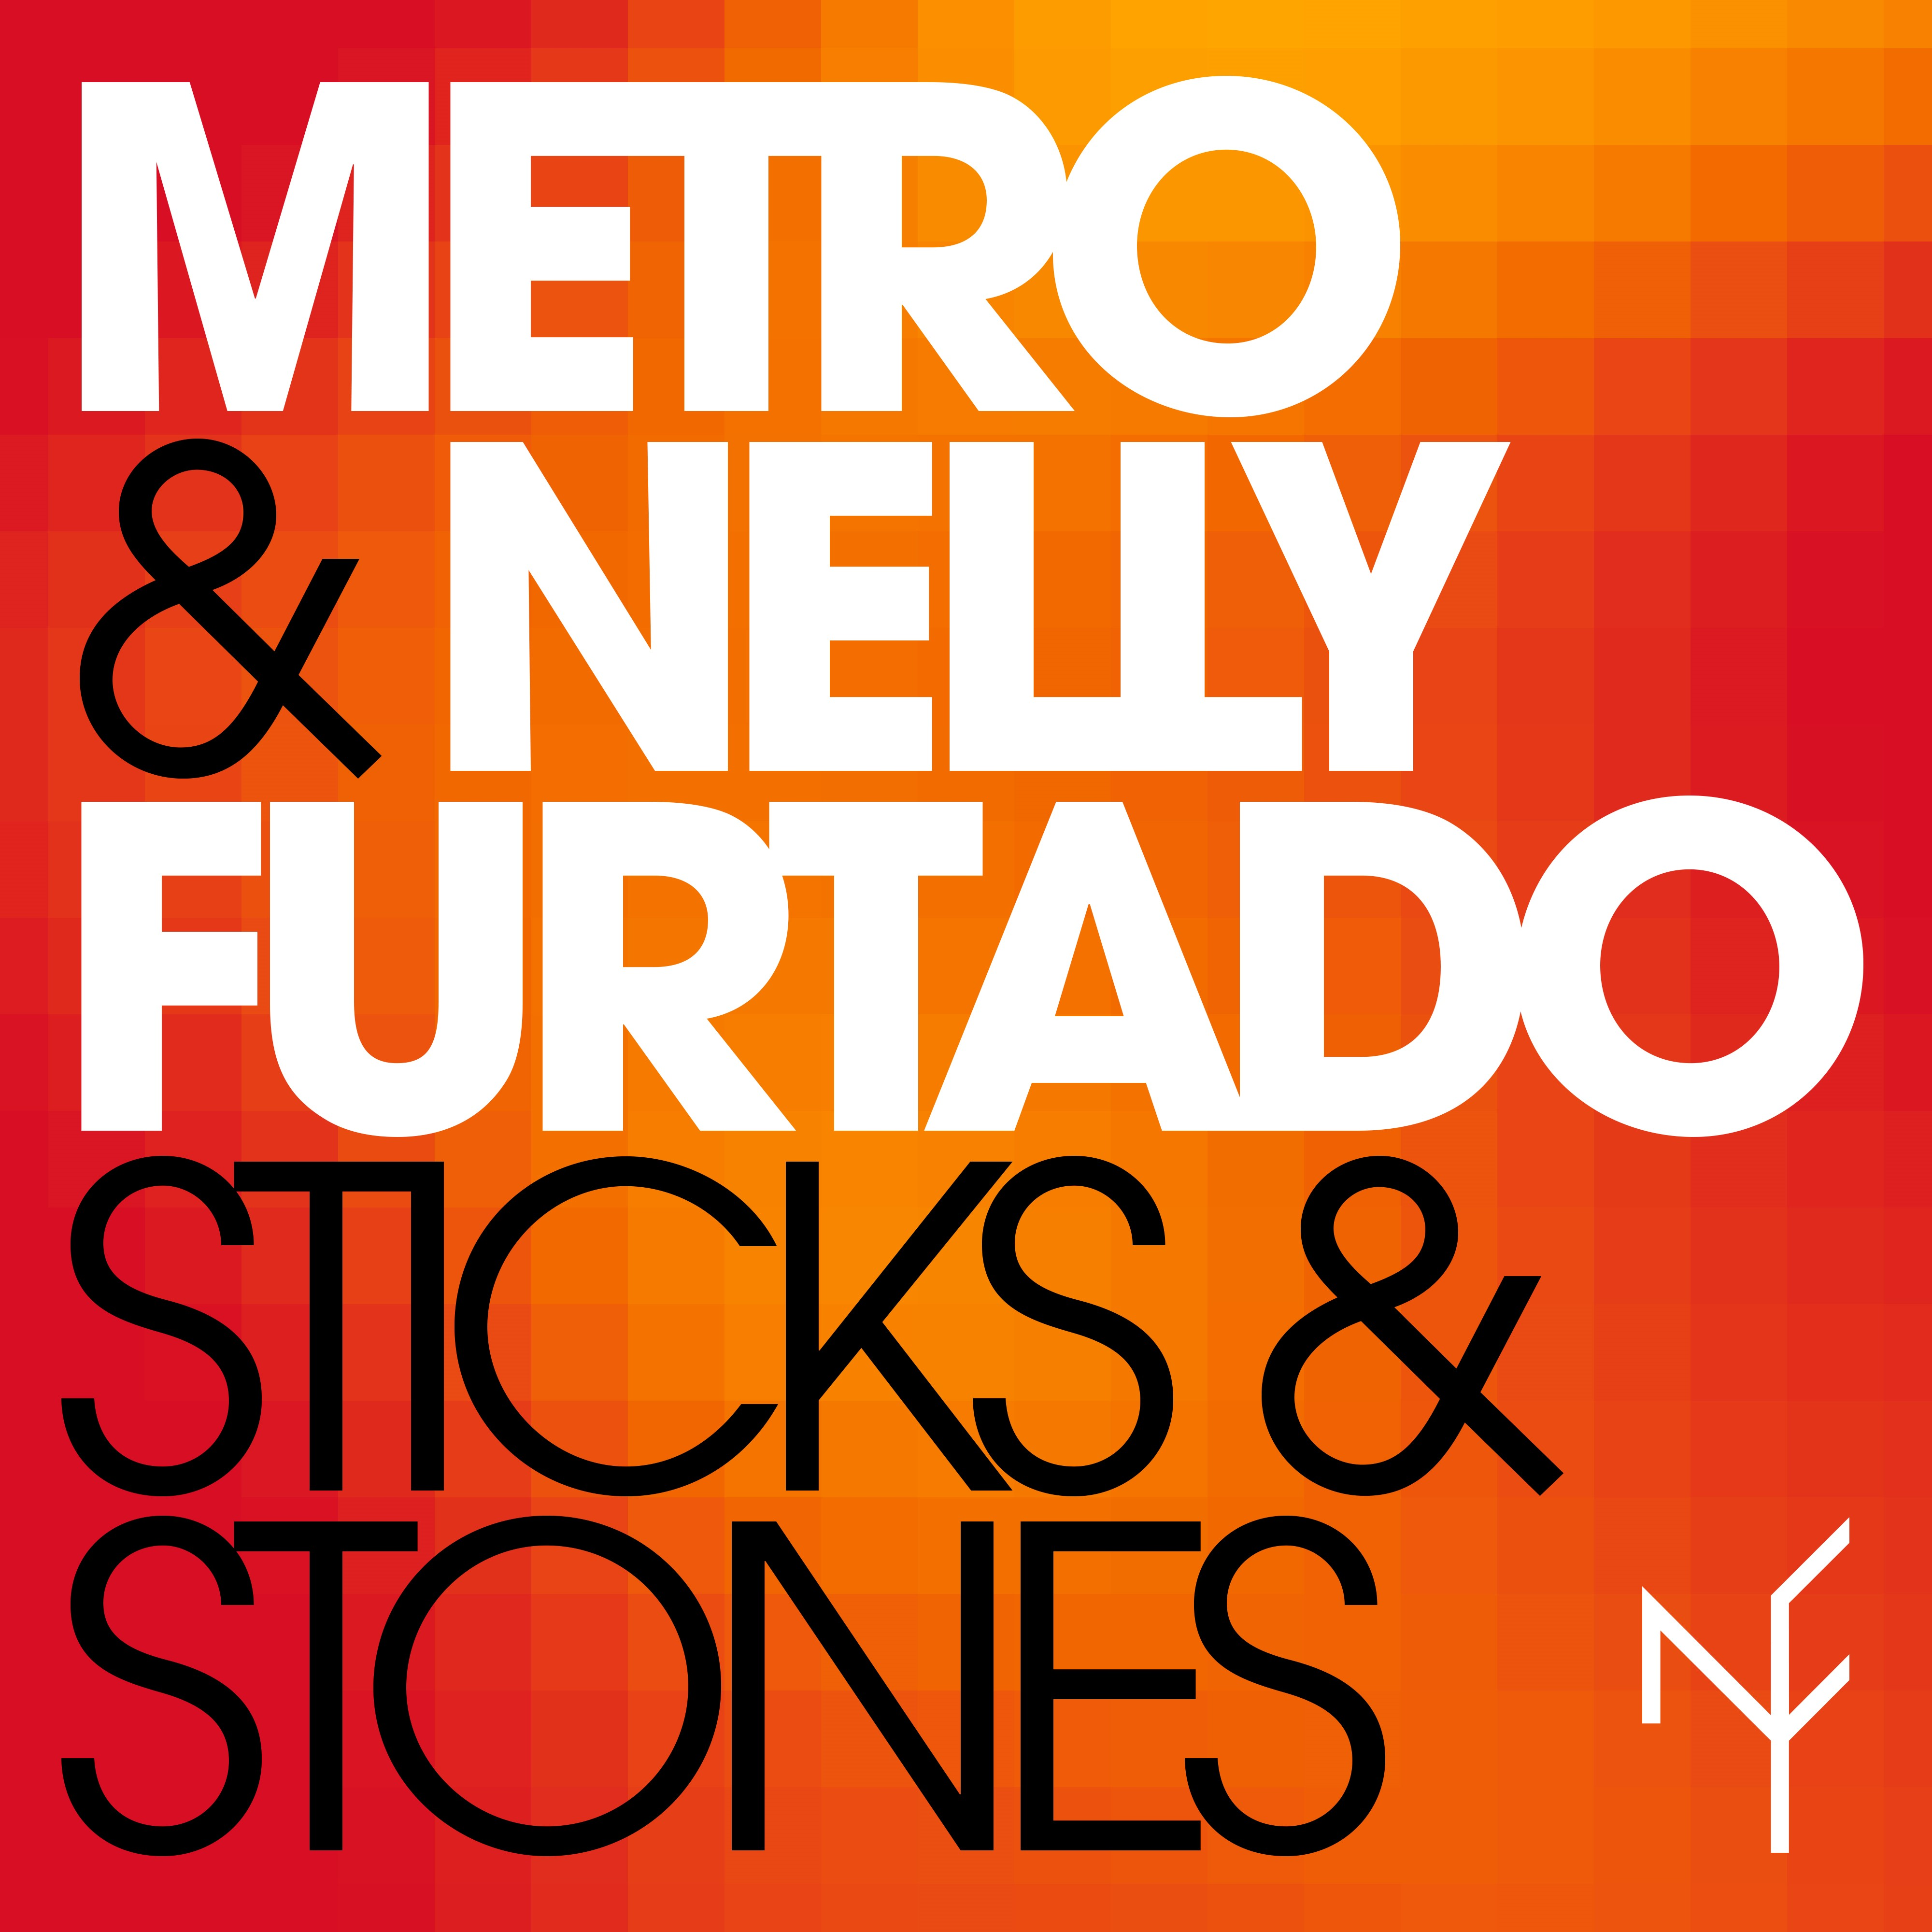 nelly furtado and metro sticks and stones the ride pop dance song music radikal records north america